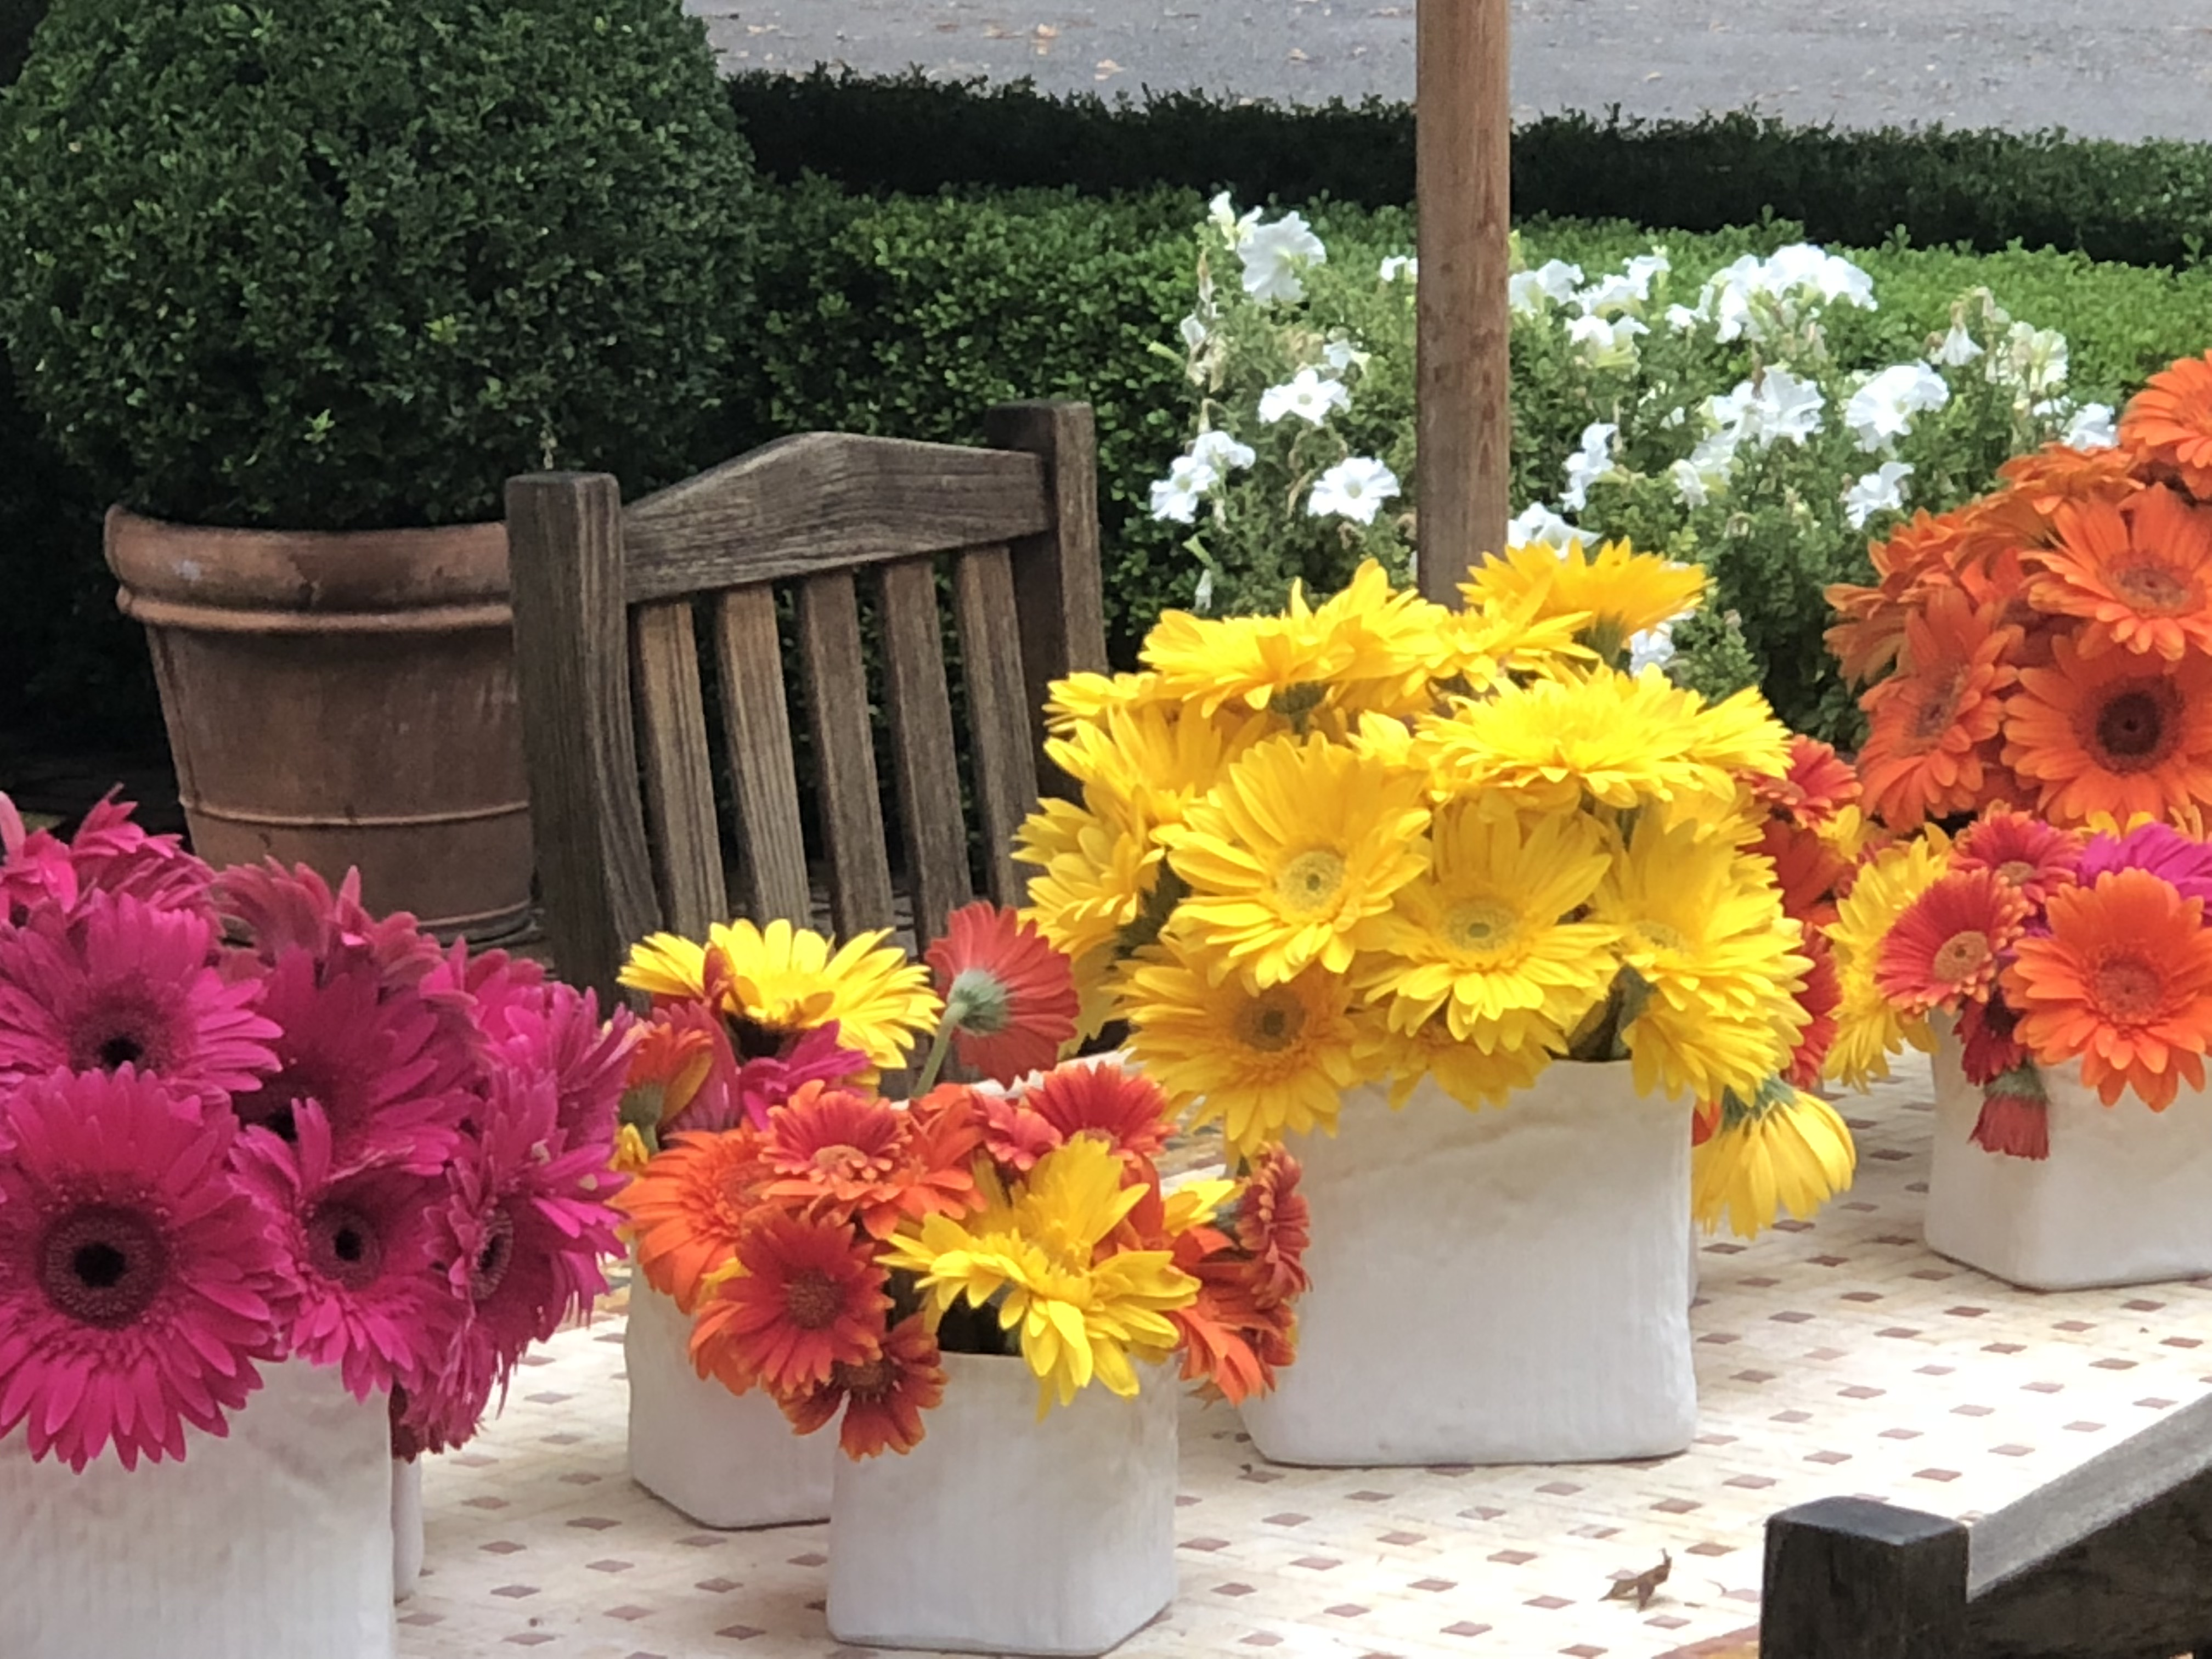 Gerbera daisies gerbera daisies come in a variety of bright colors pink salmon orange yellow and white and their flowers range from 2 to 5 izmirmasajfo